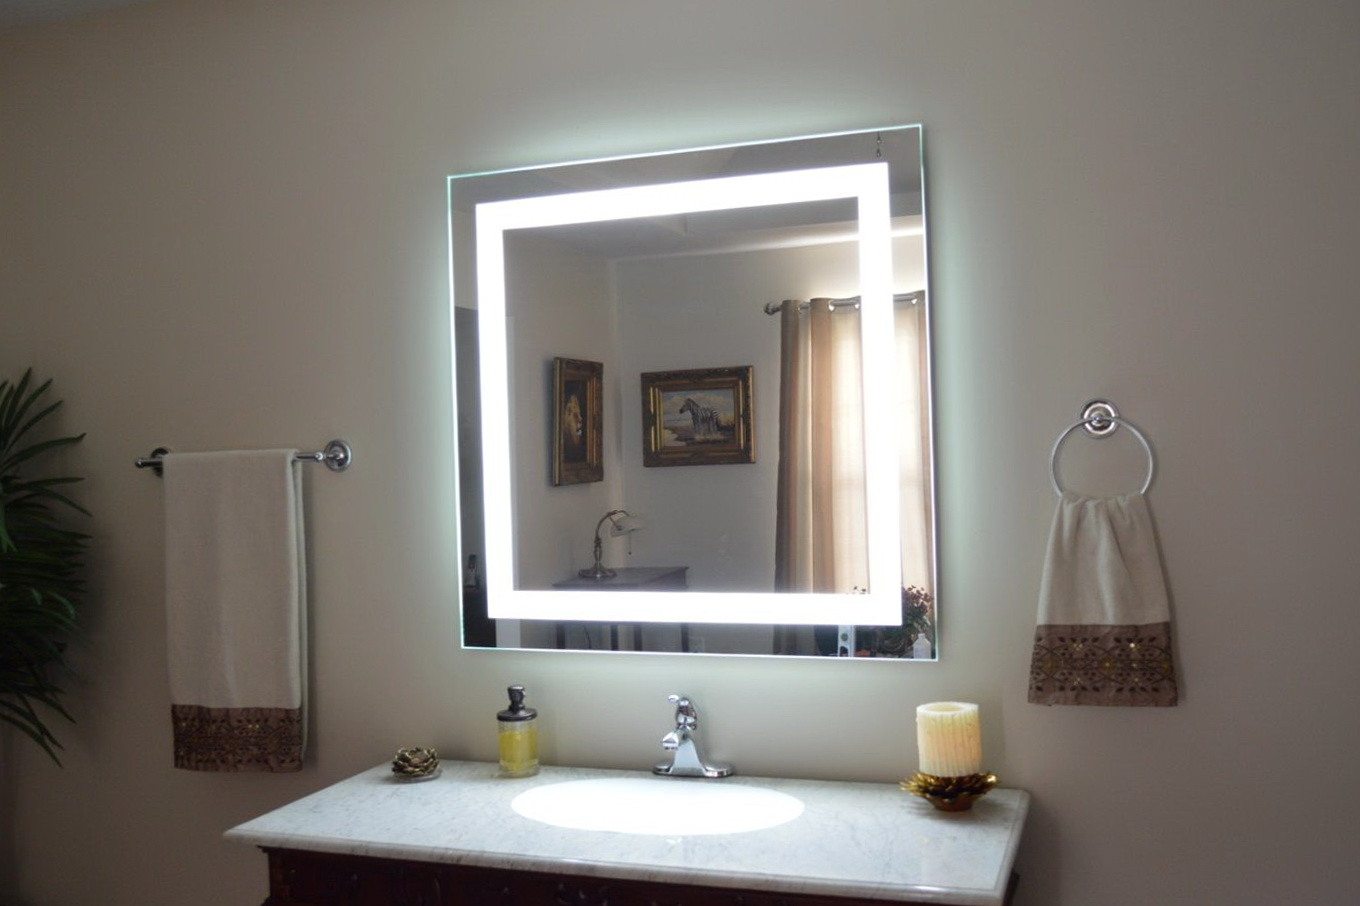 Ikea Bathroom Wall Mirror With Lights Square Vanity For Bedroom Modern Round Storage Framed Mirrors Hack Red Standard Lighted Apppie Org